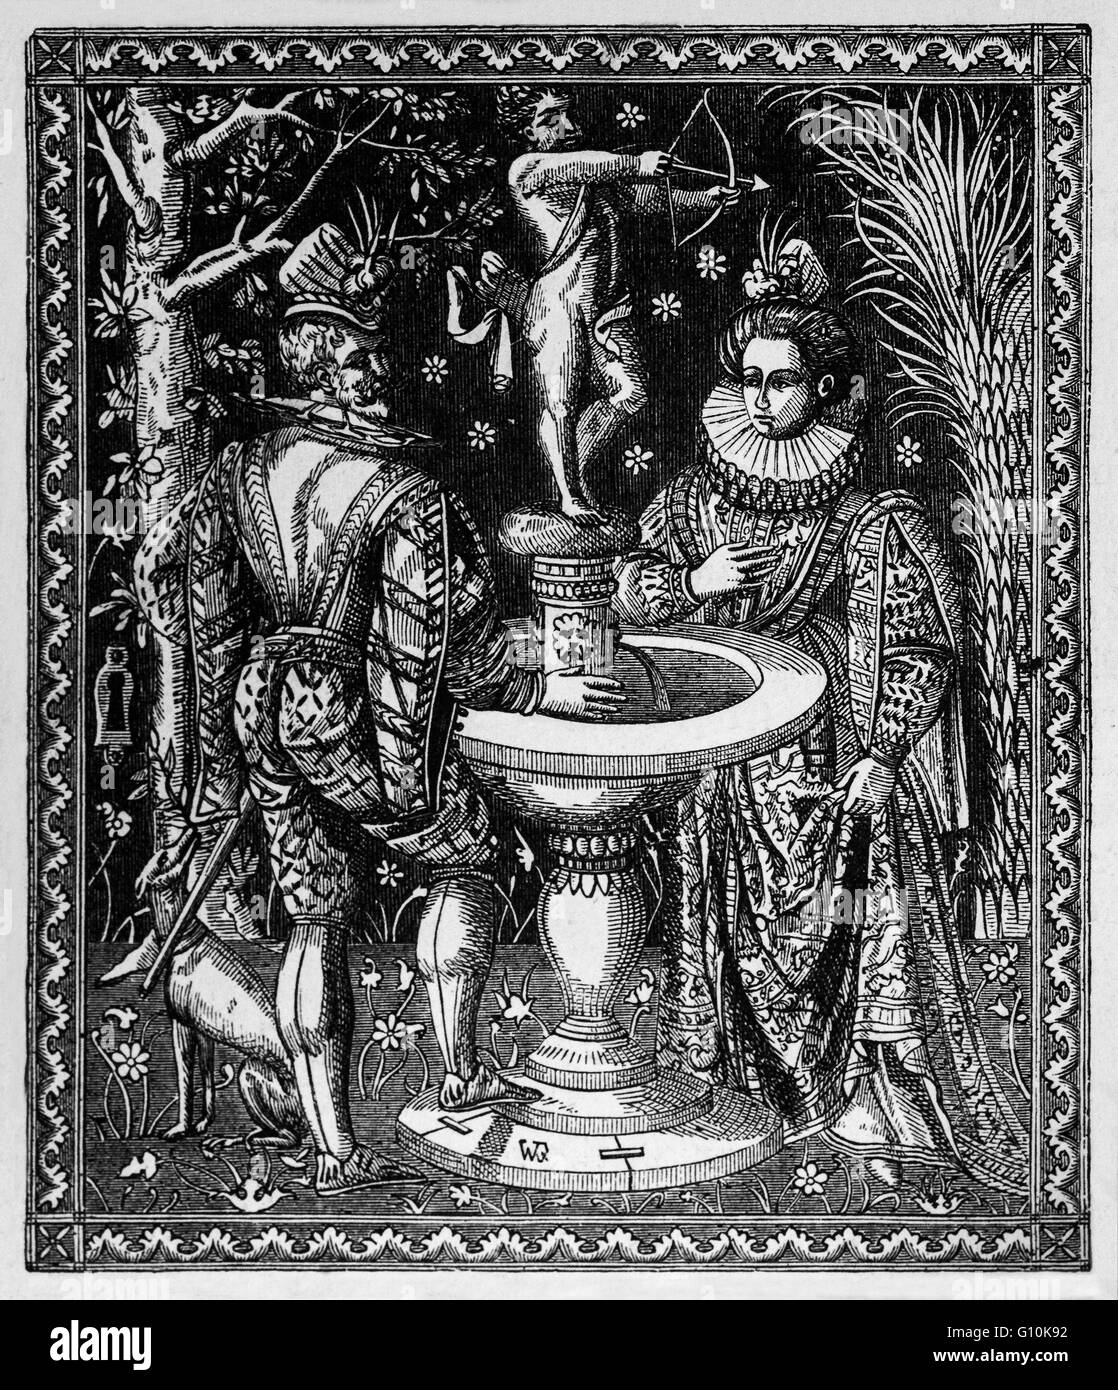 The Wedding Casket of  Philip II of Spain on his marriage to  Mary I in 1554. He was King of Spain, King of Portugal, Stock Photo